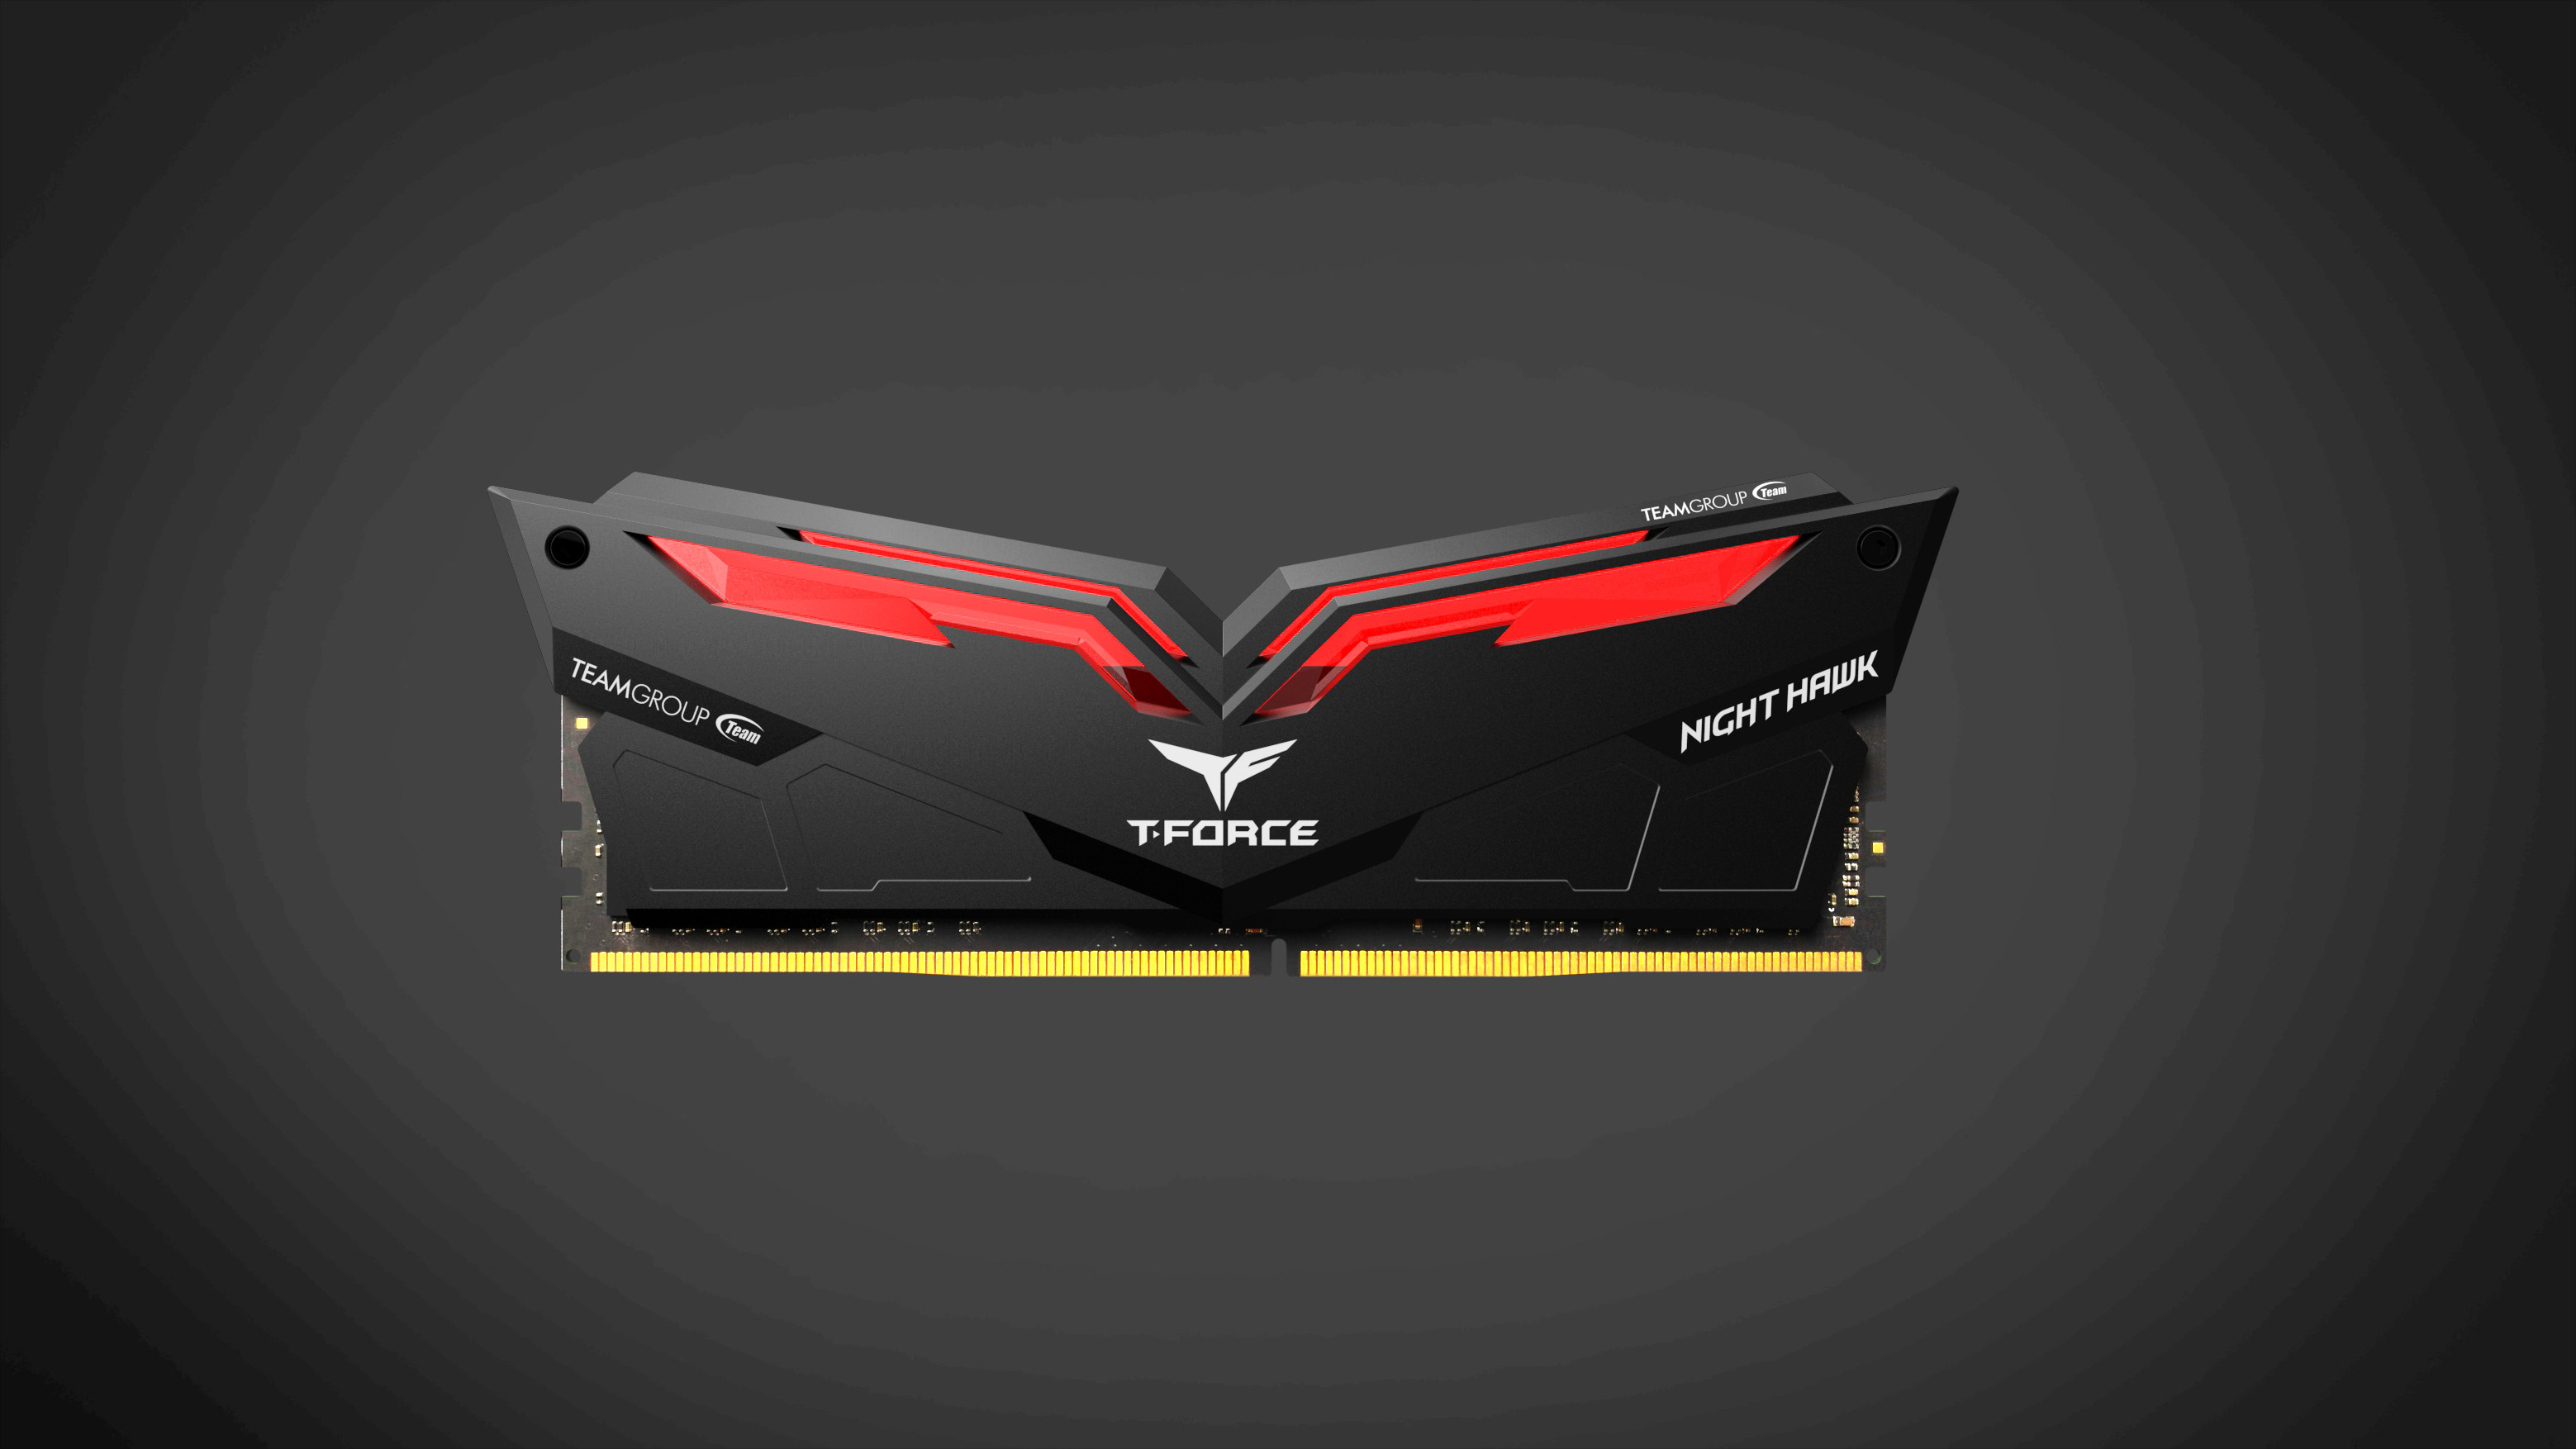 Night Hawk RGB DDR4 Memory Moudle / Team Group Inc.